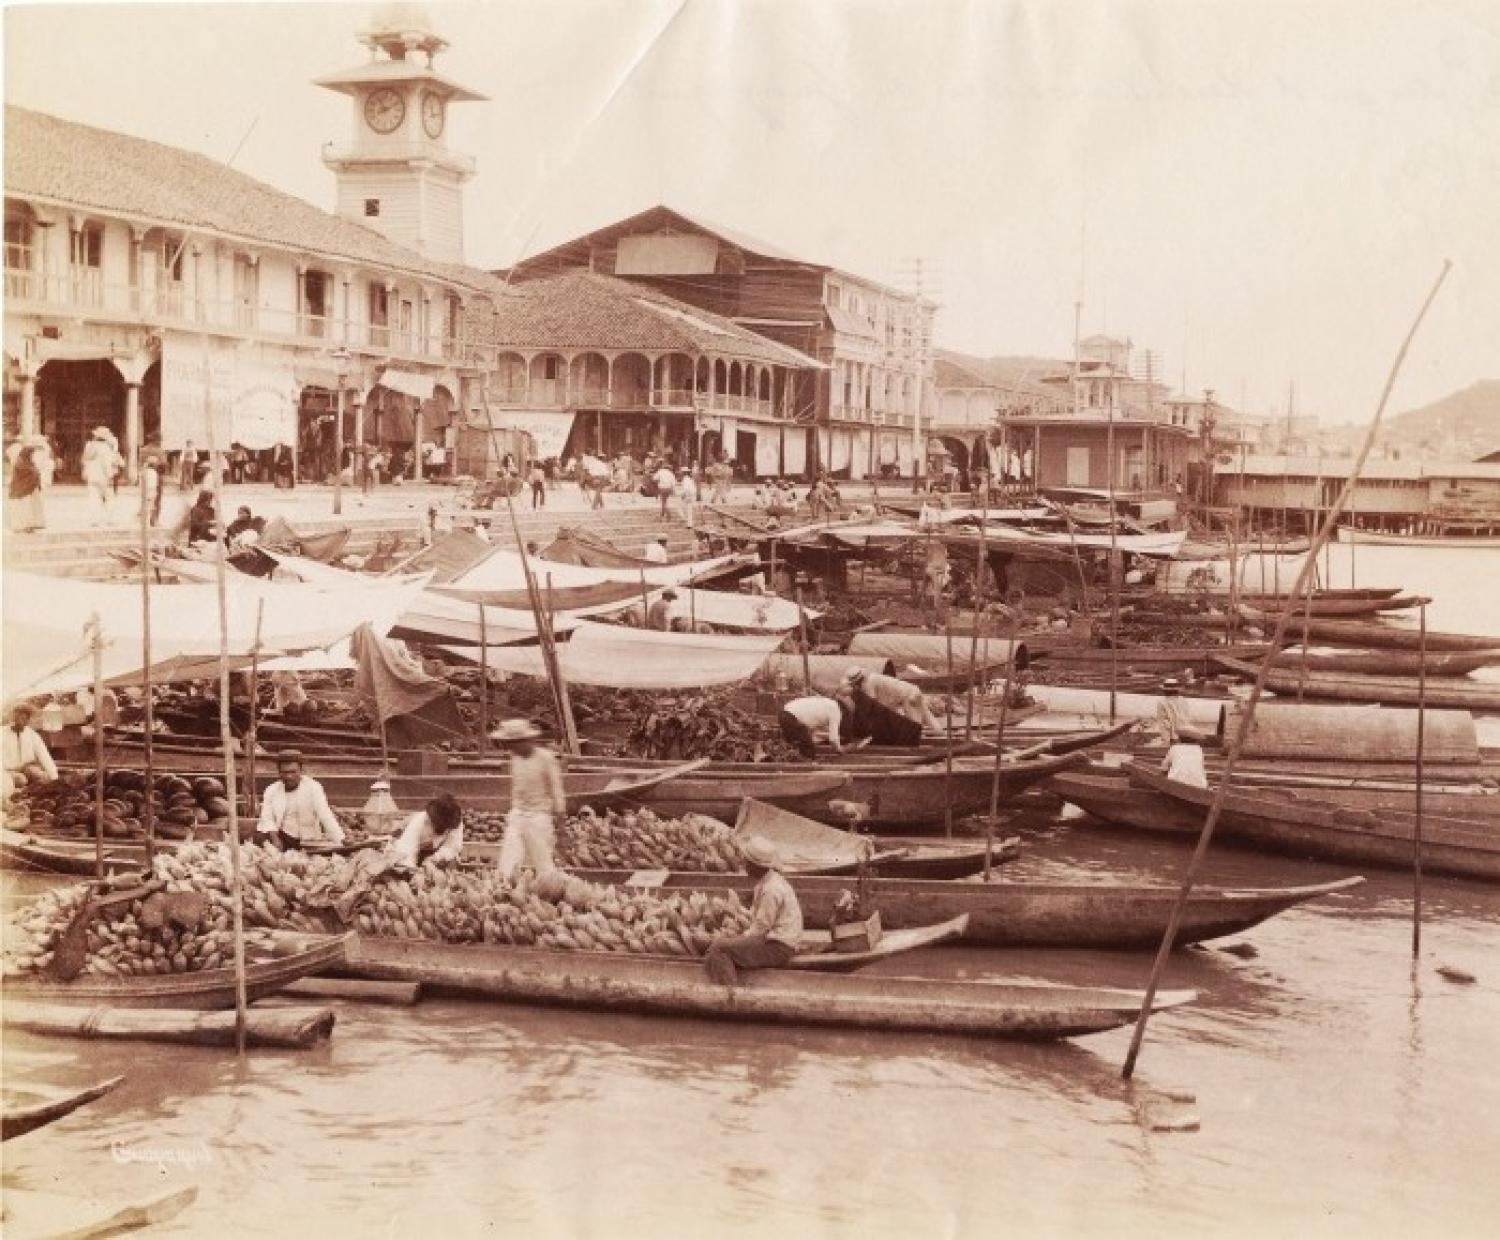 FruitSellers in Boats Guayaquil. Ecuador C188